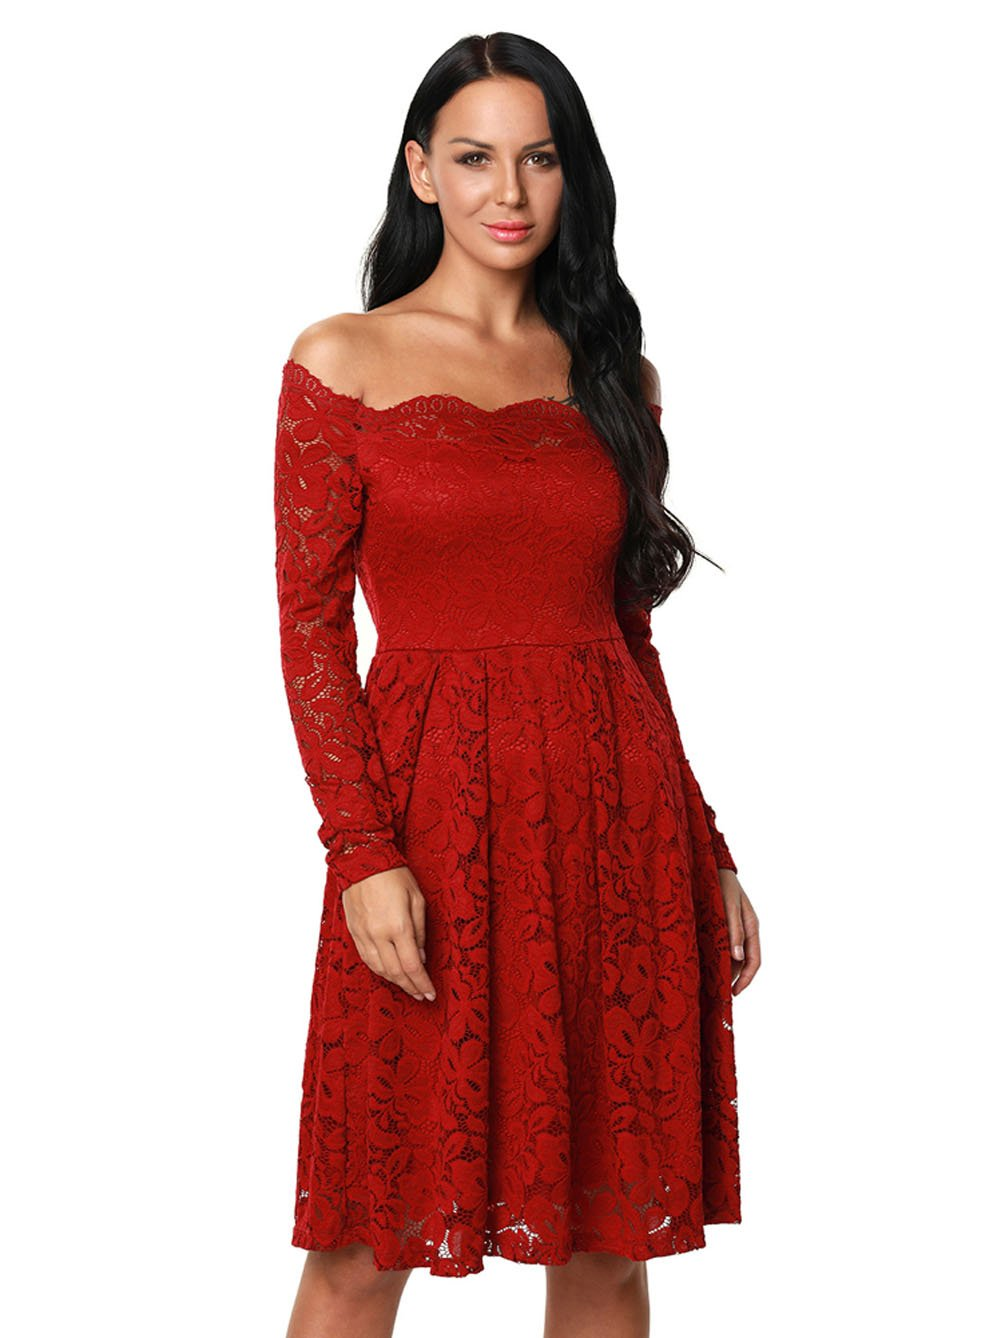 BYY Long Sleeve Floral Lace Boat Neck Cocktail Swing Dress(Red,S) by BYY